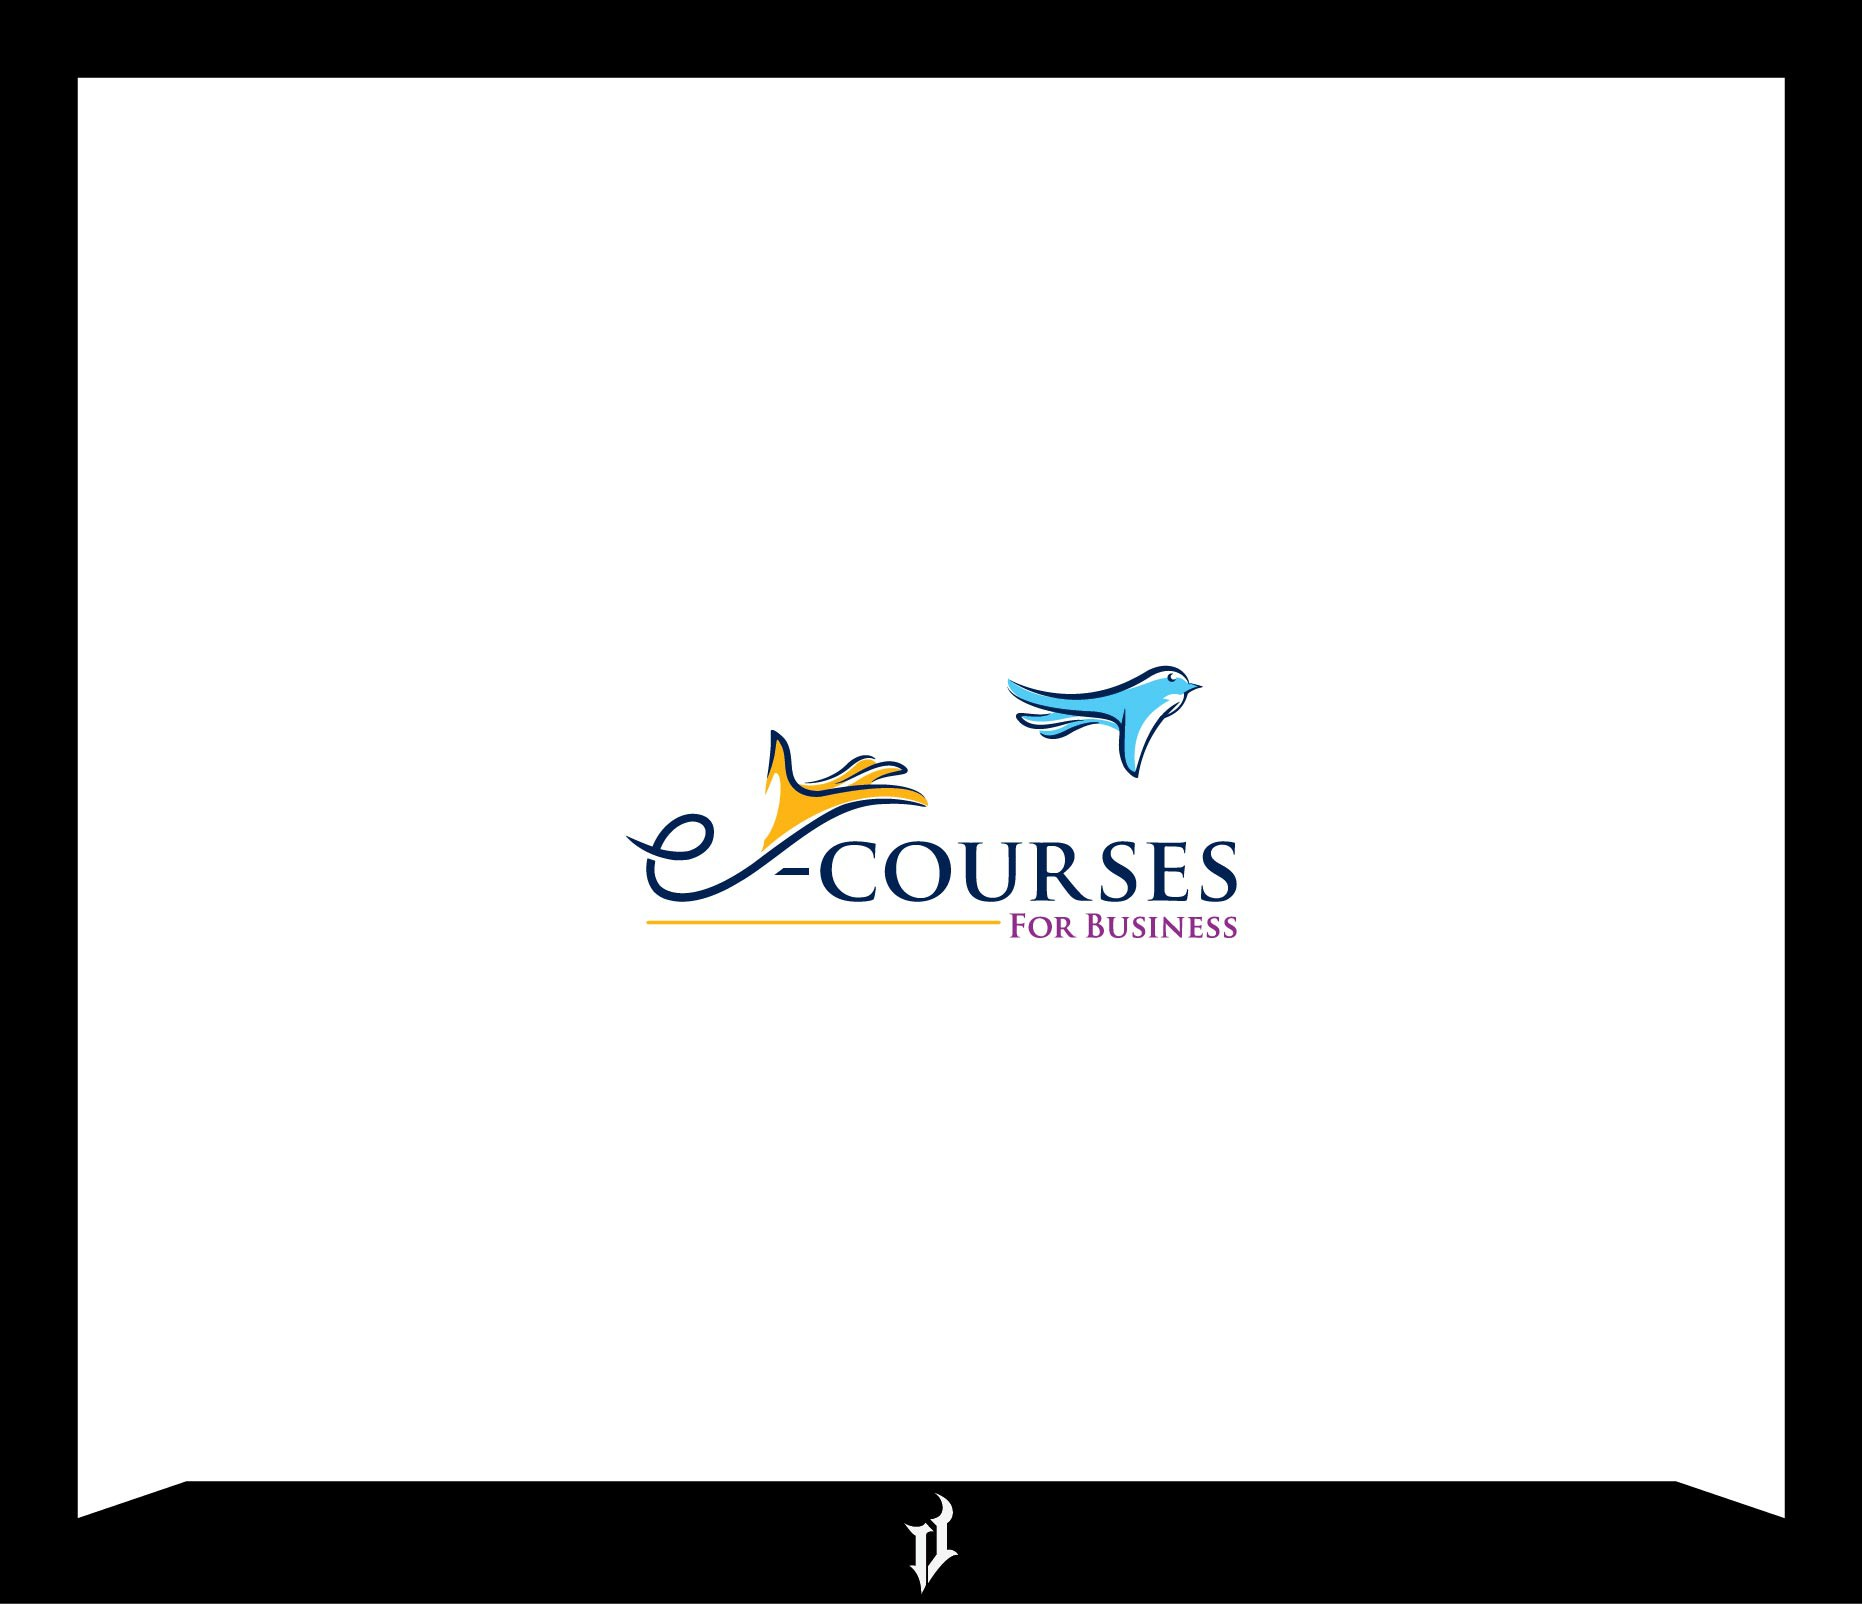 Create a quirky yet professional logo for a business selling e-courses to enhance people's lives by upgrading their skil